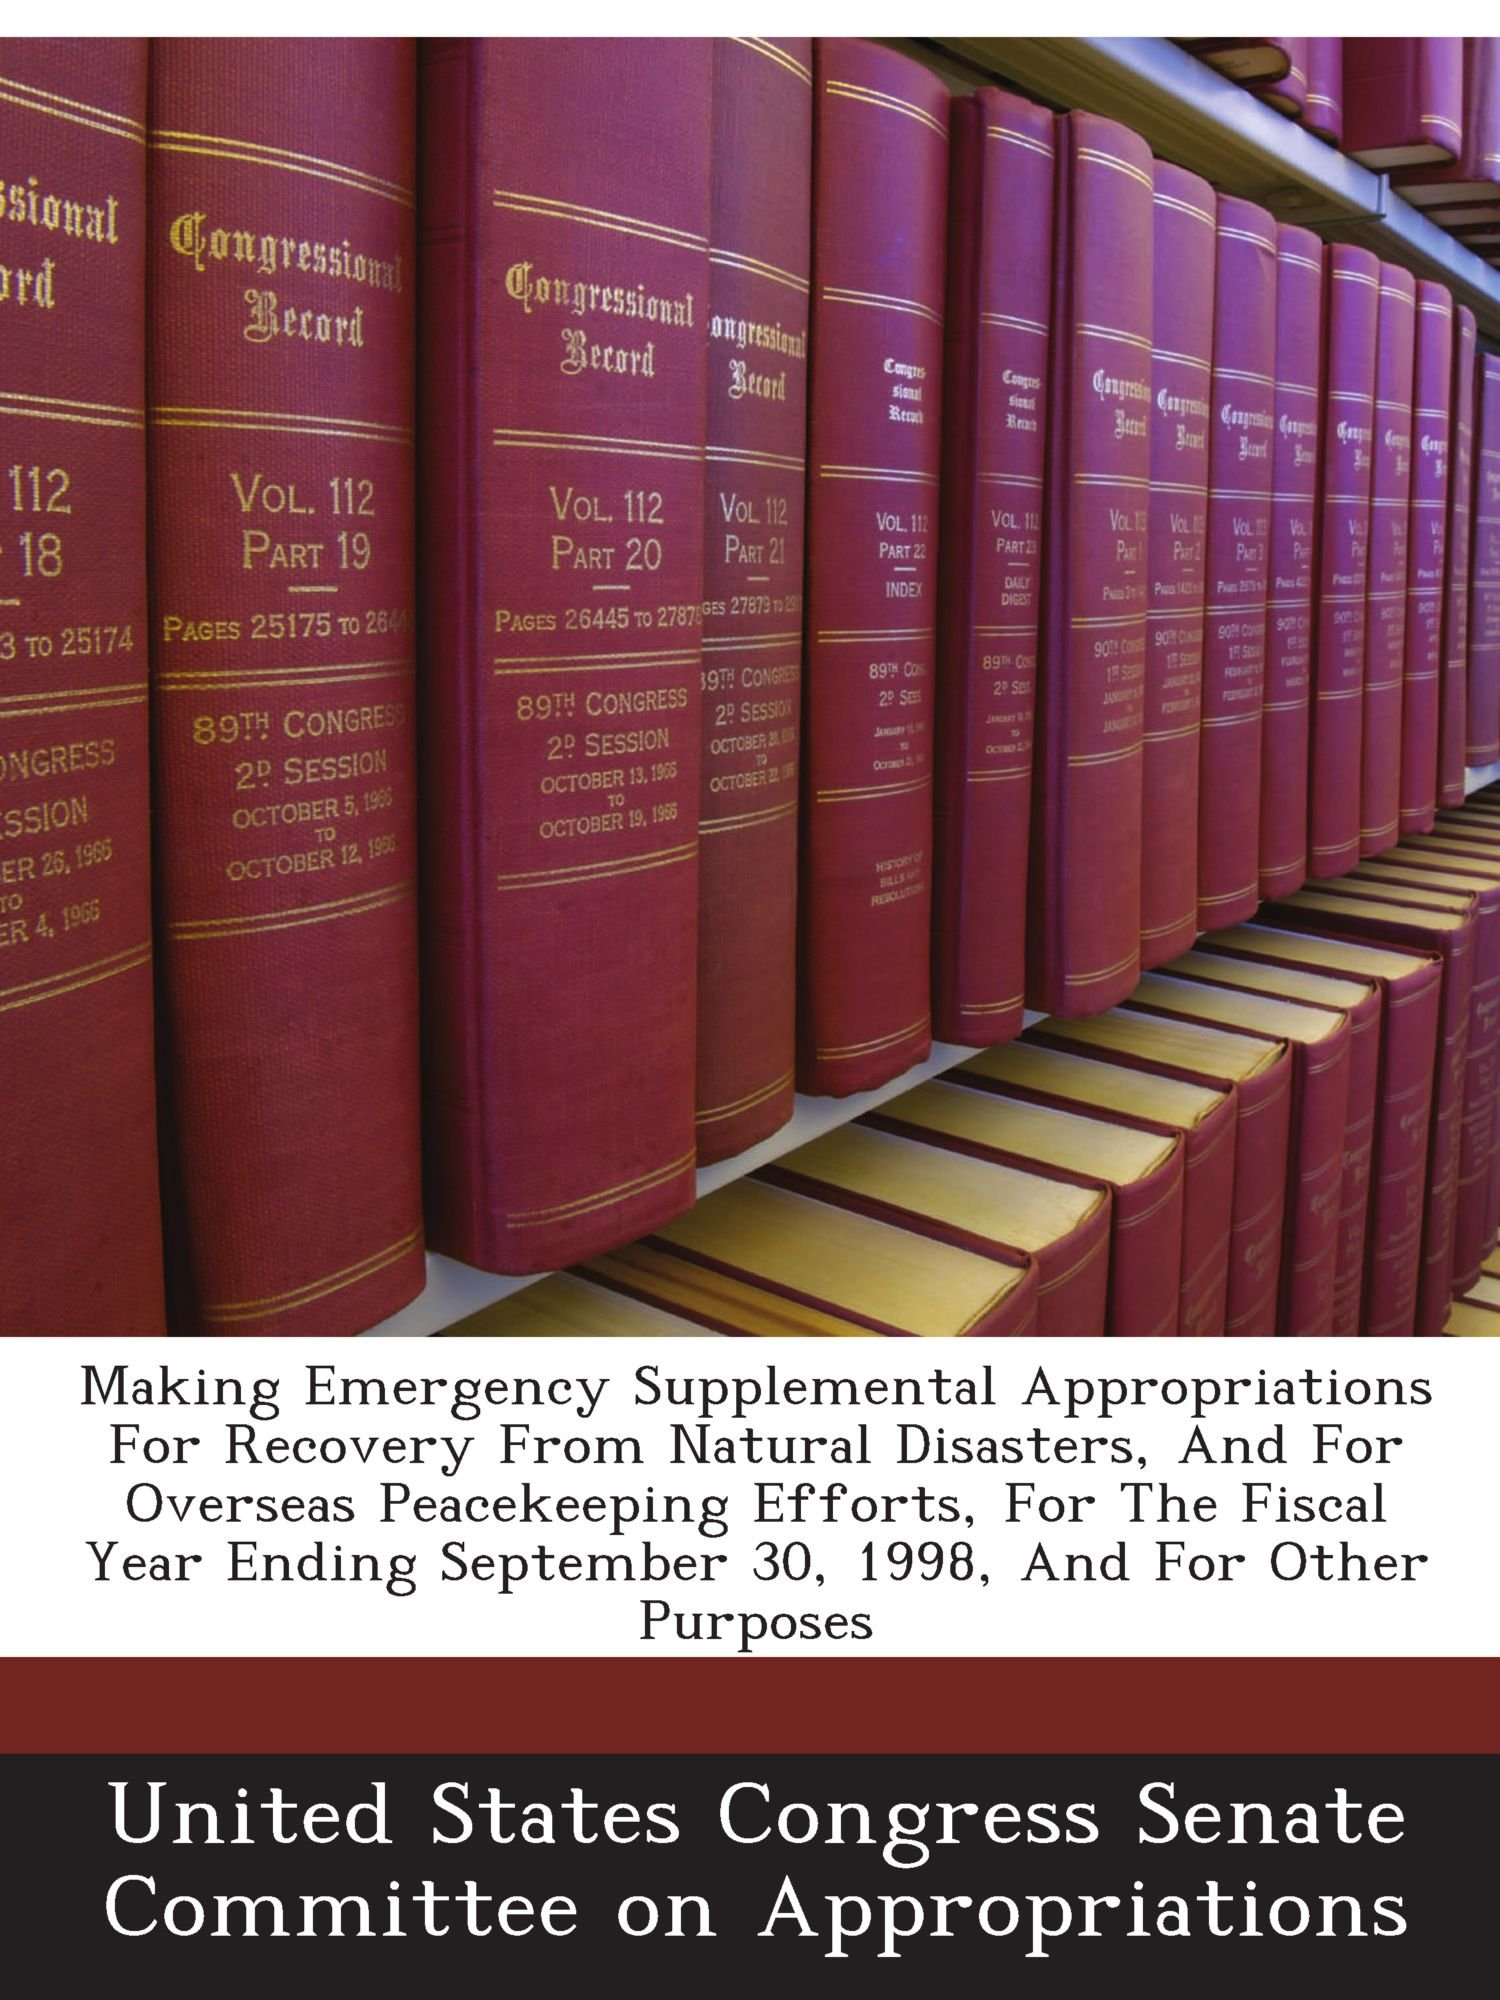 Making Emergency Supplemental Appropriations For Recovery From Natural Disasters, And For Overseas Peacekeeping Efforts, For The Fiscal Year Ending September 30, 1998, And For Other Purposes PDF